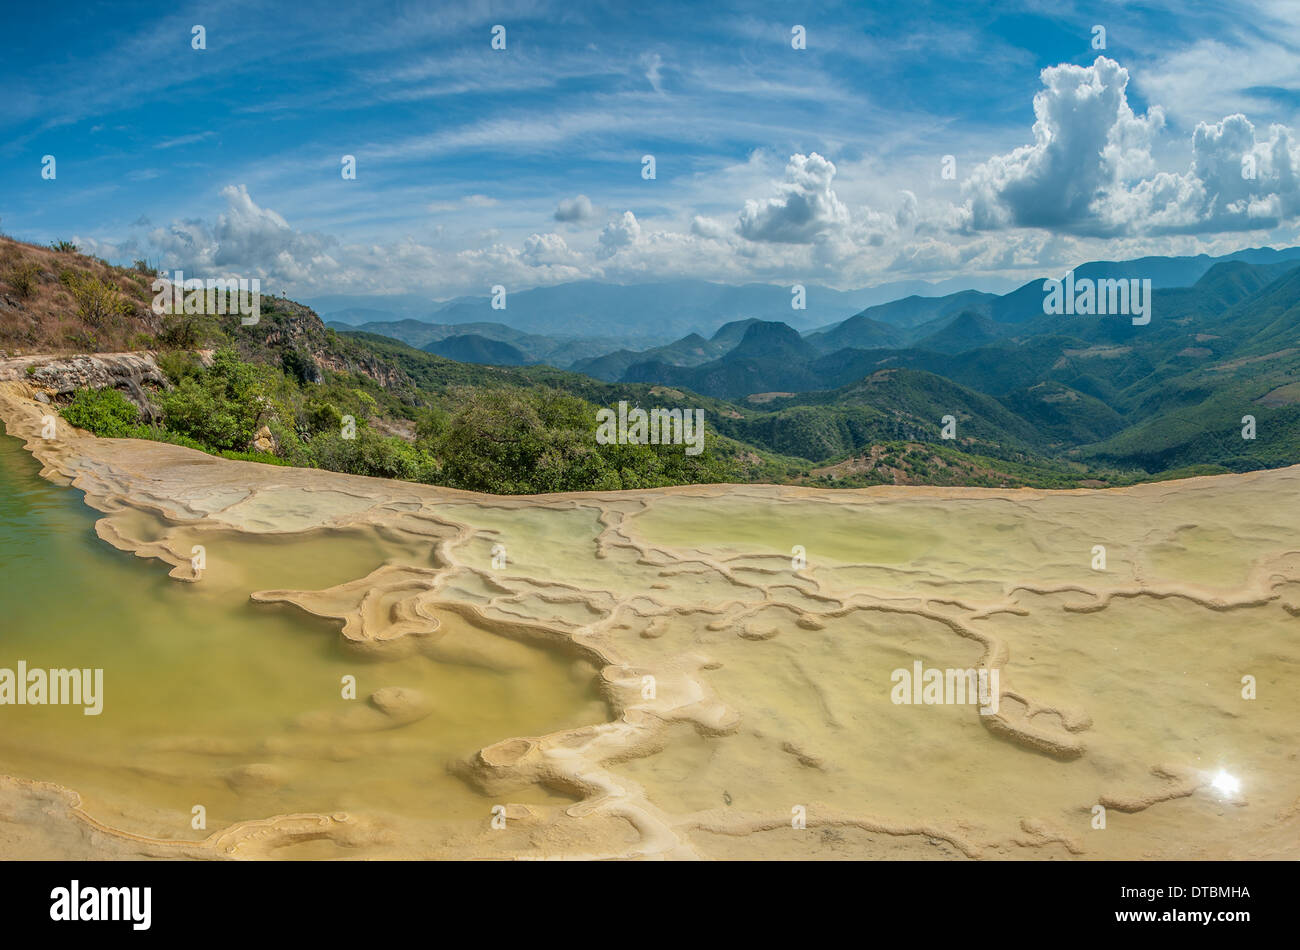 Hierve el Agua, natural rock formations in the Mexican state of Oaxaca - Stock Image